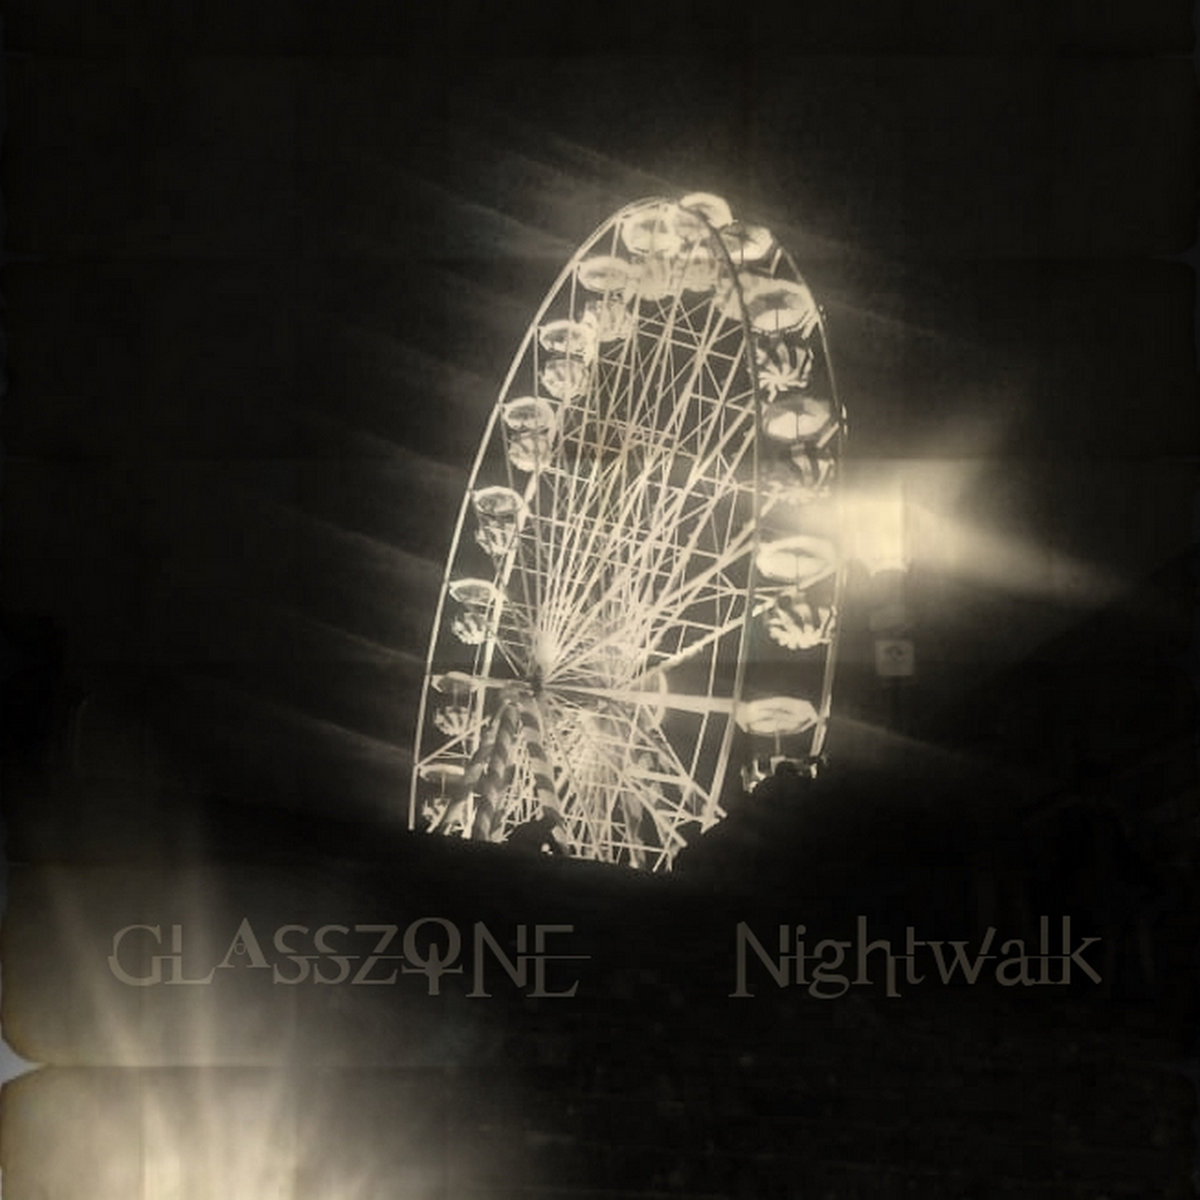 Glasszone cover